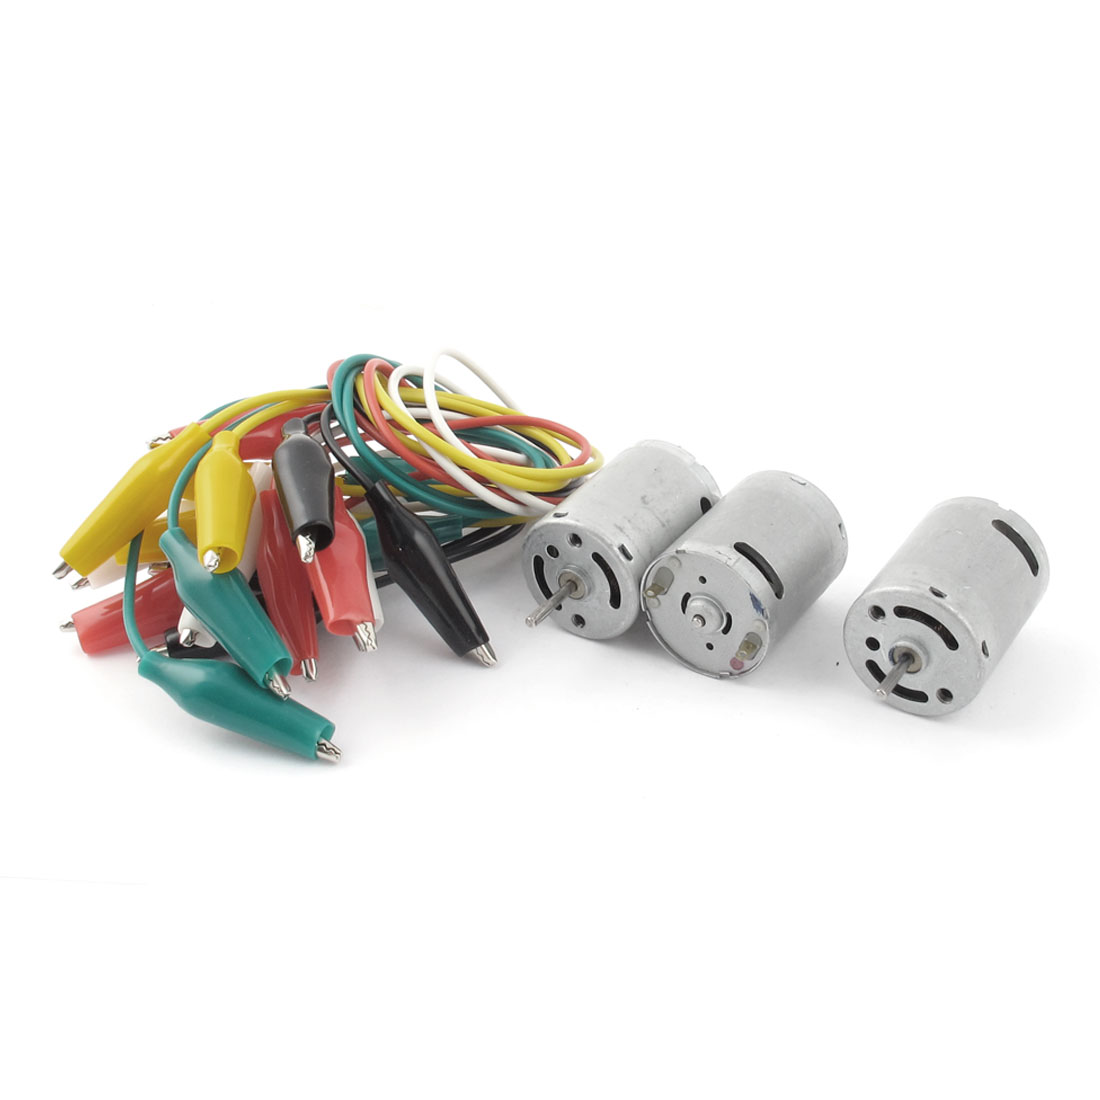 3 Pcs Silver Tone DC 3V 2 Terminals Mini Motor 12000RPM Speed w Alligator Clip Cable